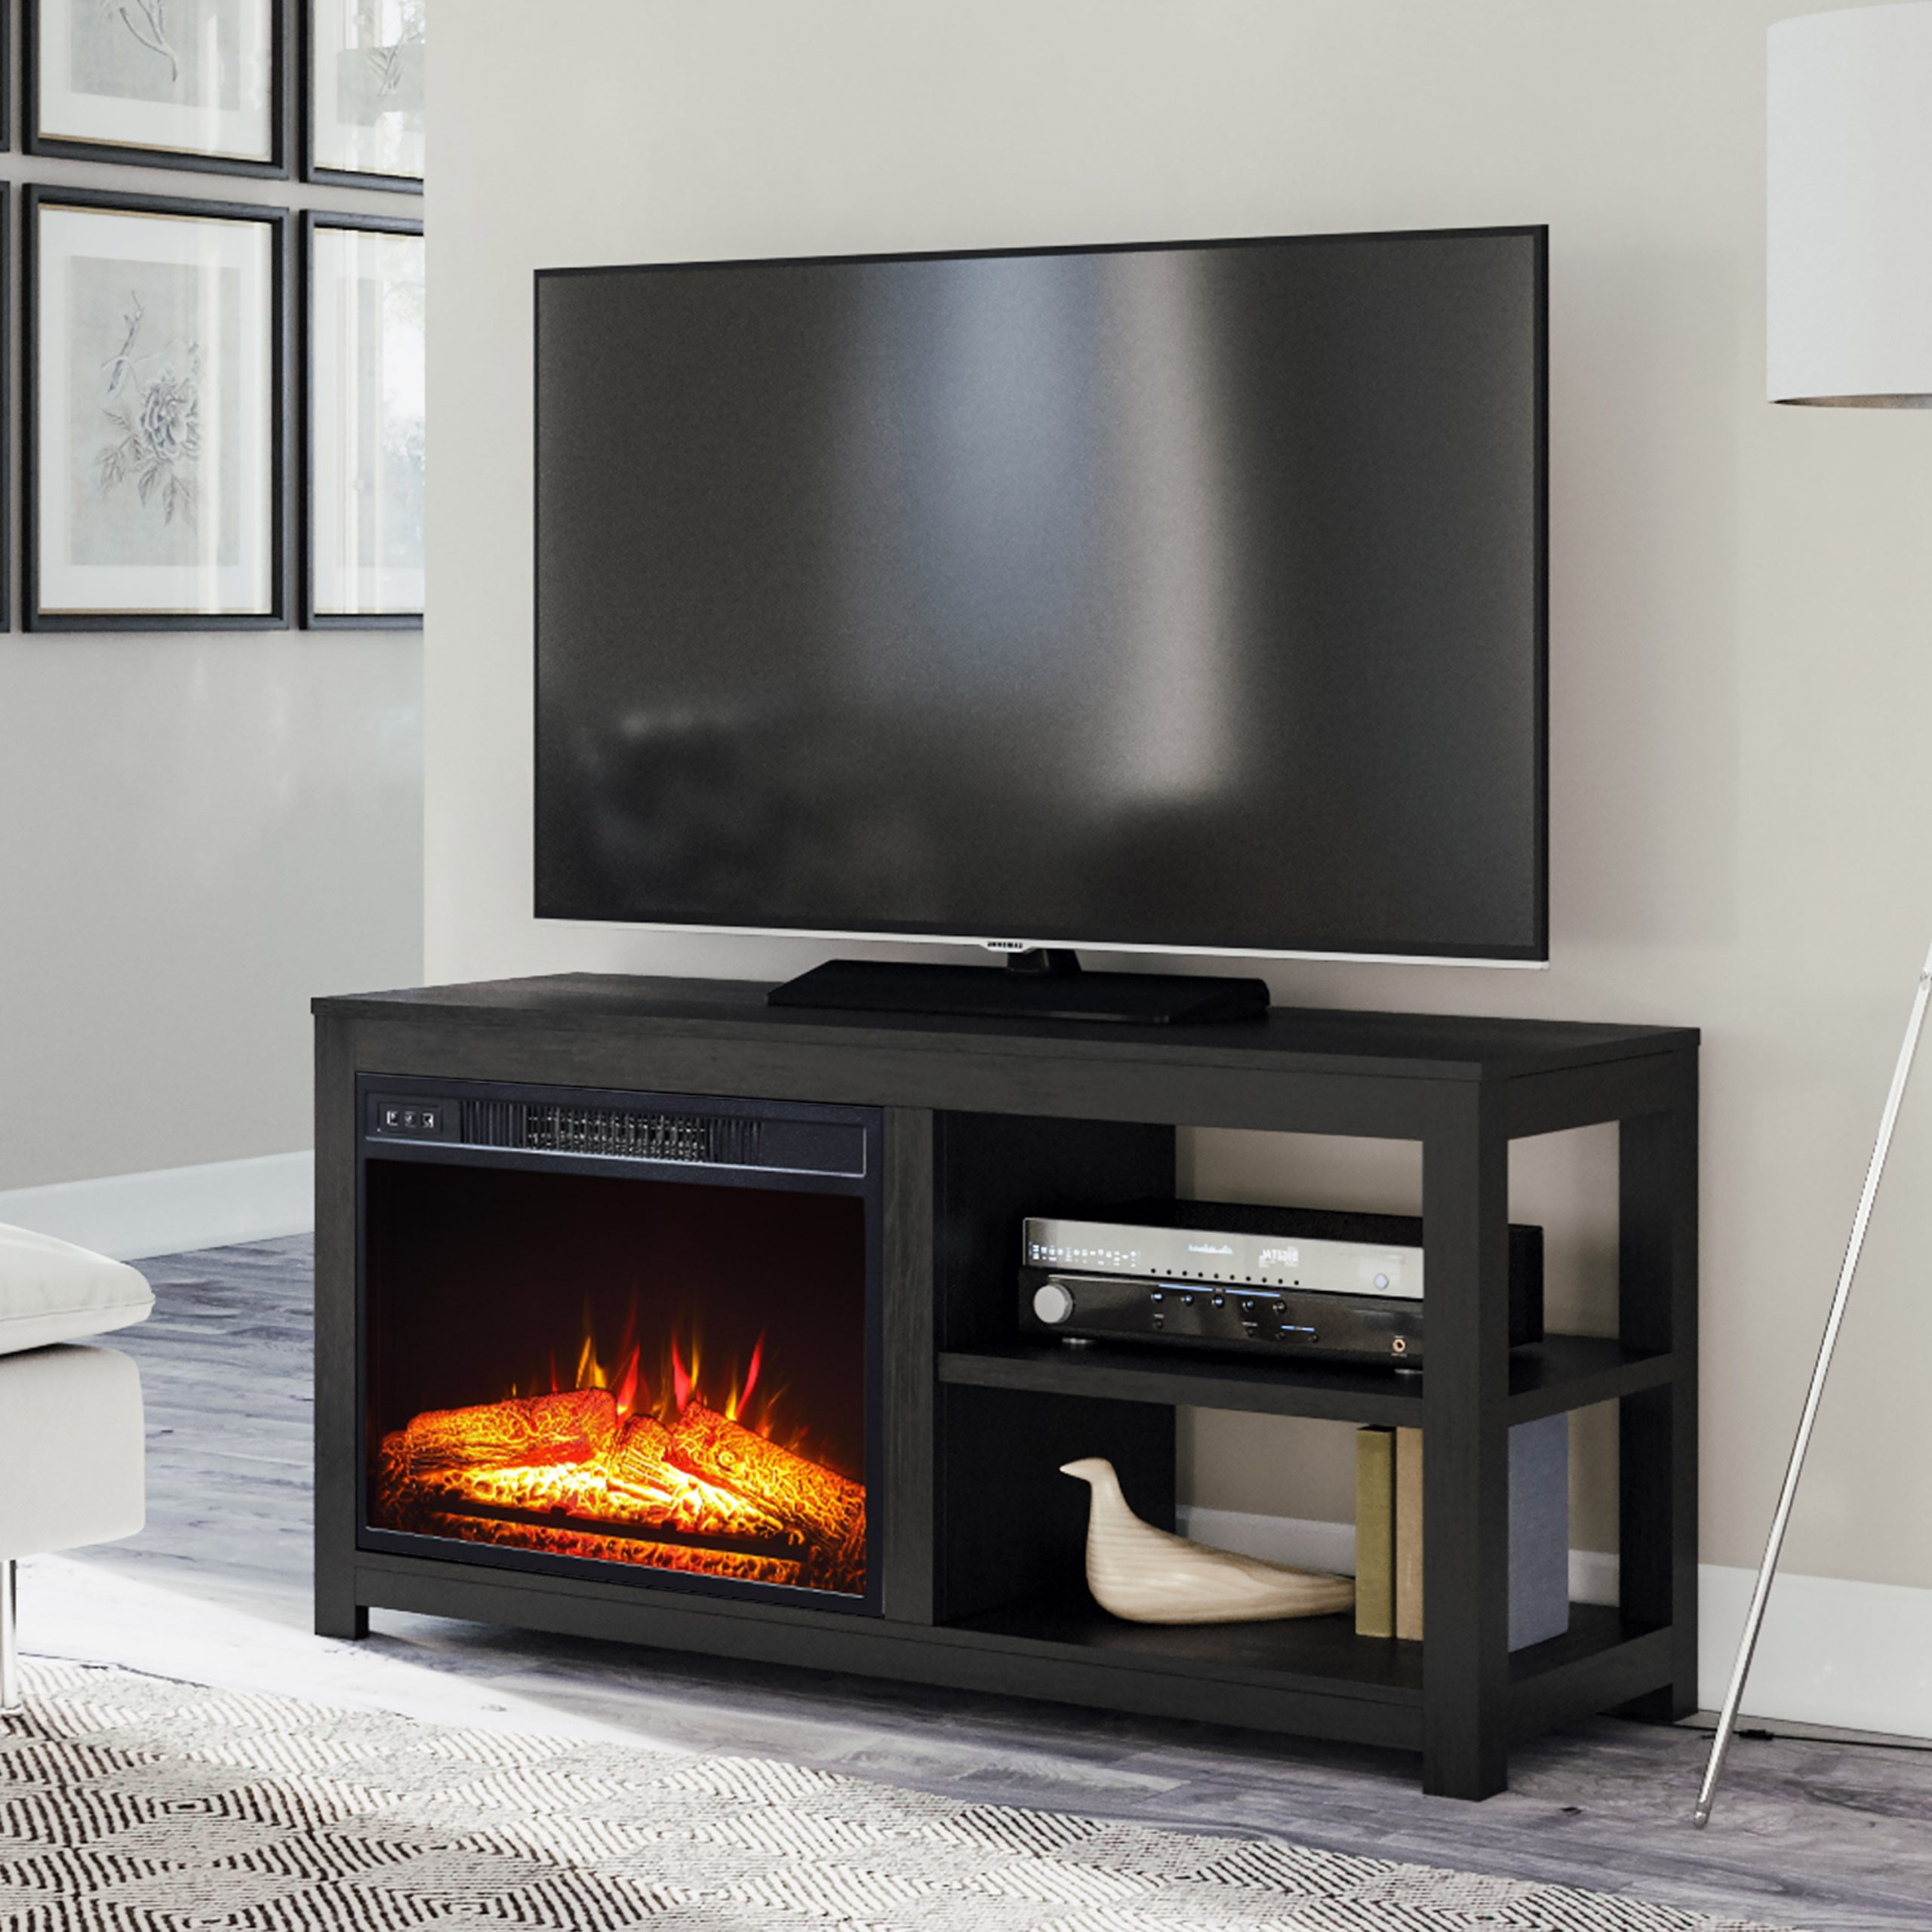 """Margulies Tv Stands For Tvs Up To 60"""" Regarding Trendy Mainstays 2 Shelf Media Fireplace Tv Stand For Flat Panel (View 1 of 25)"""